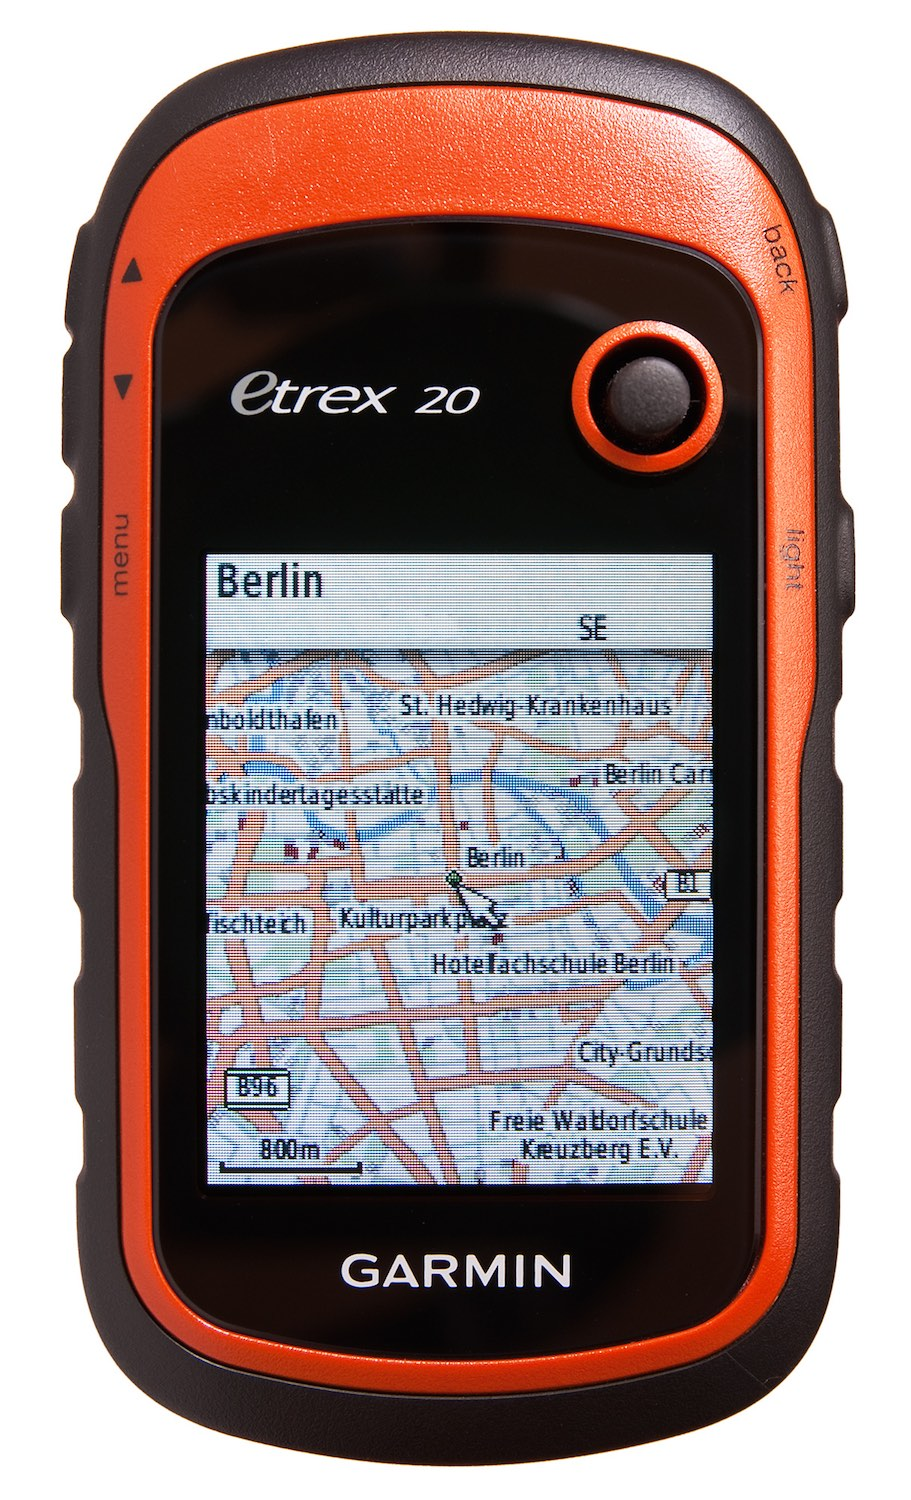 The missing Etrex 20. If someone finds it in the Himalayas, please do let us know :)